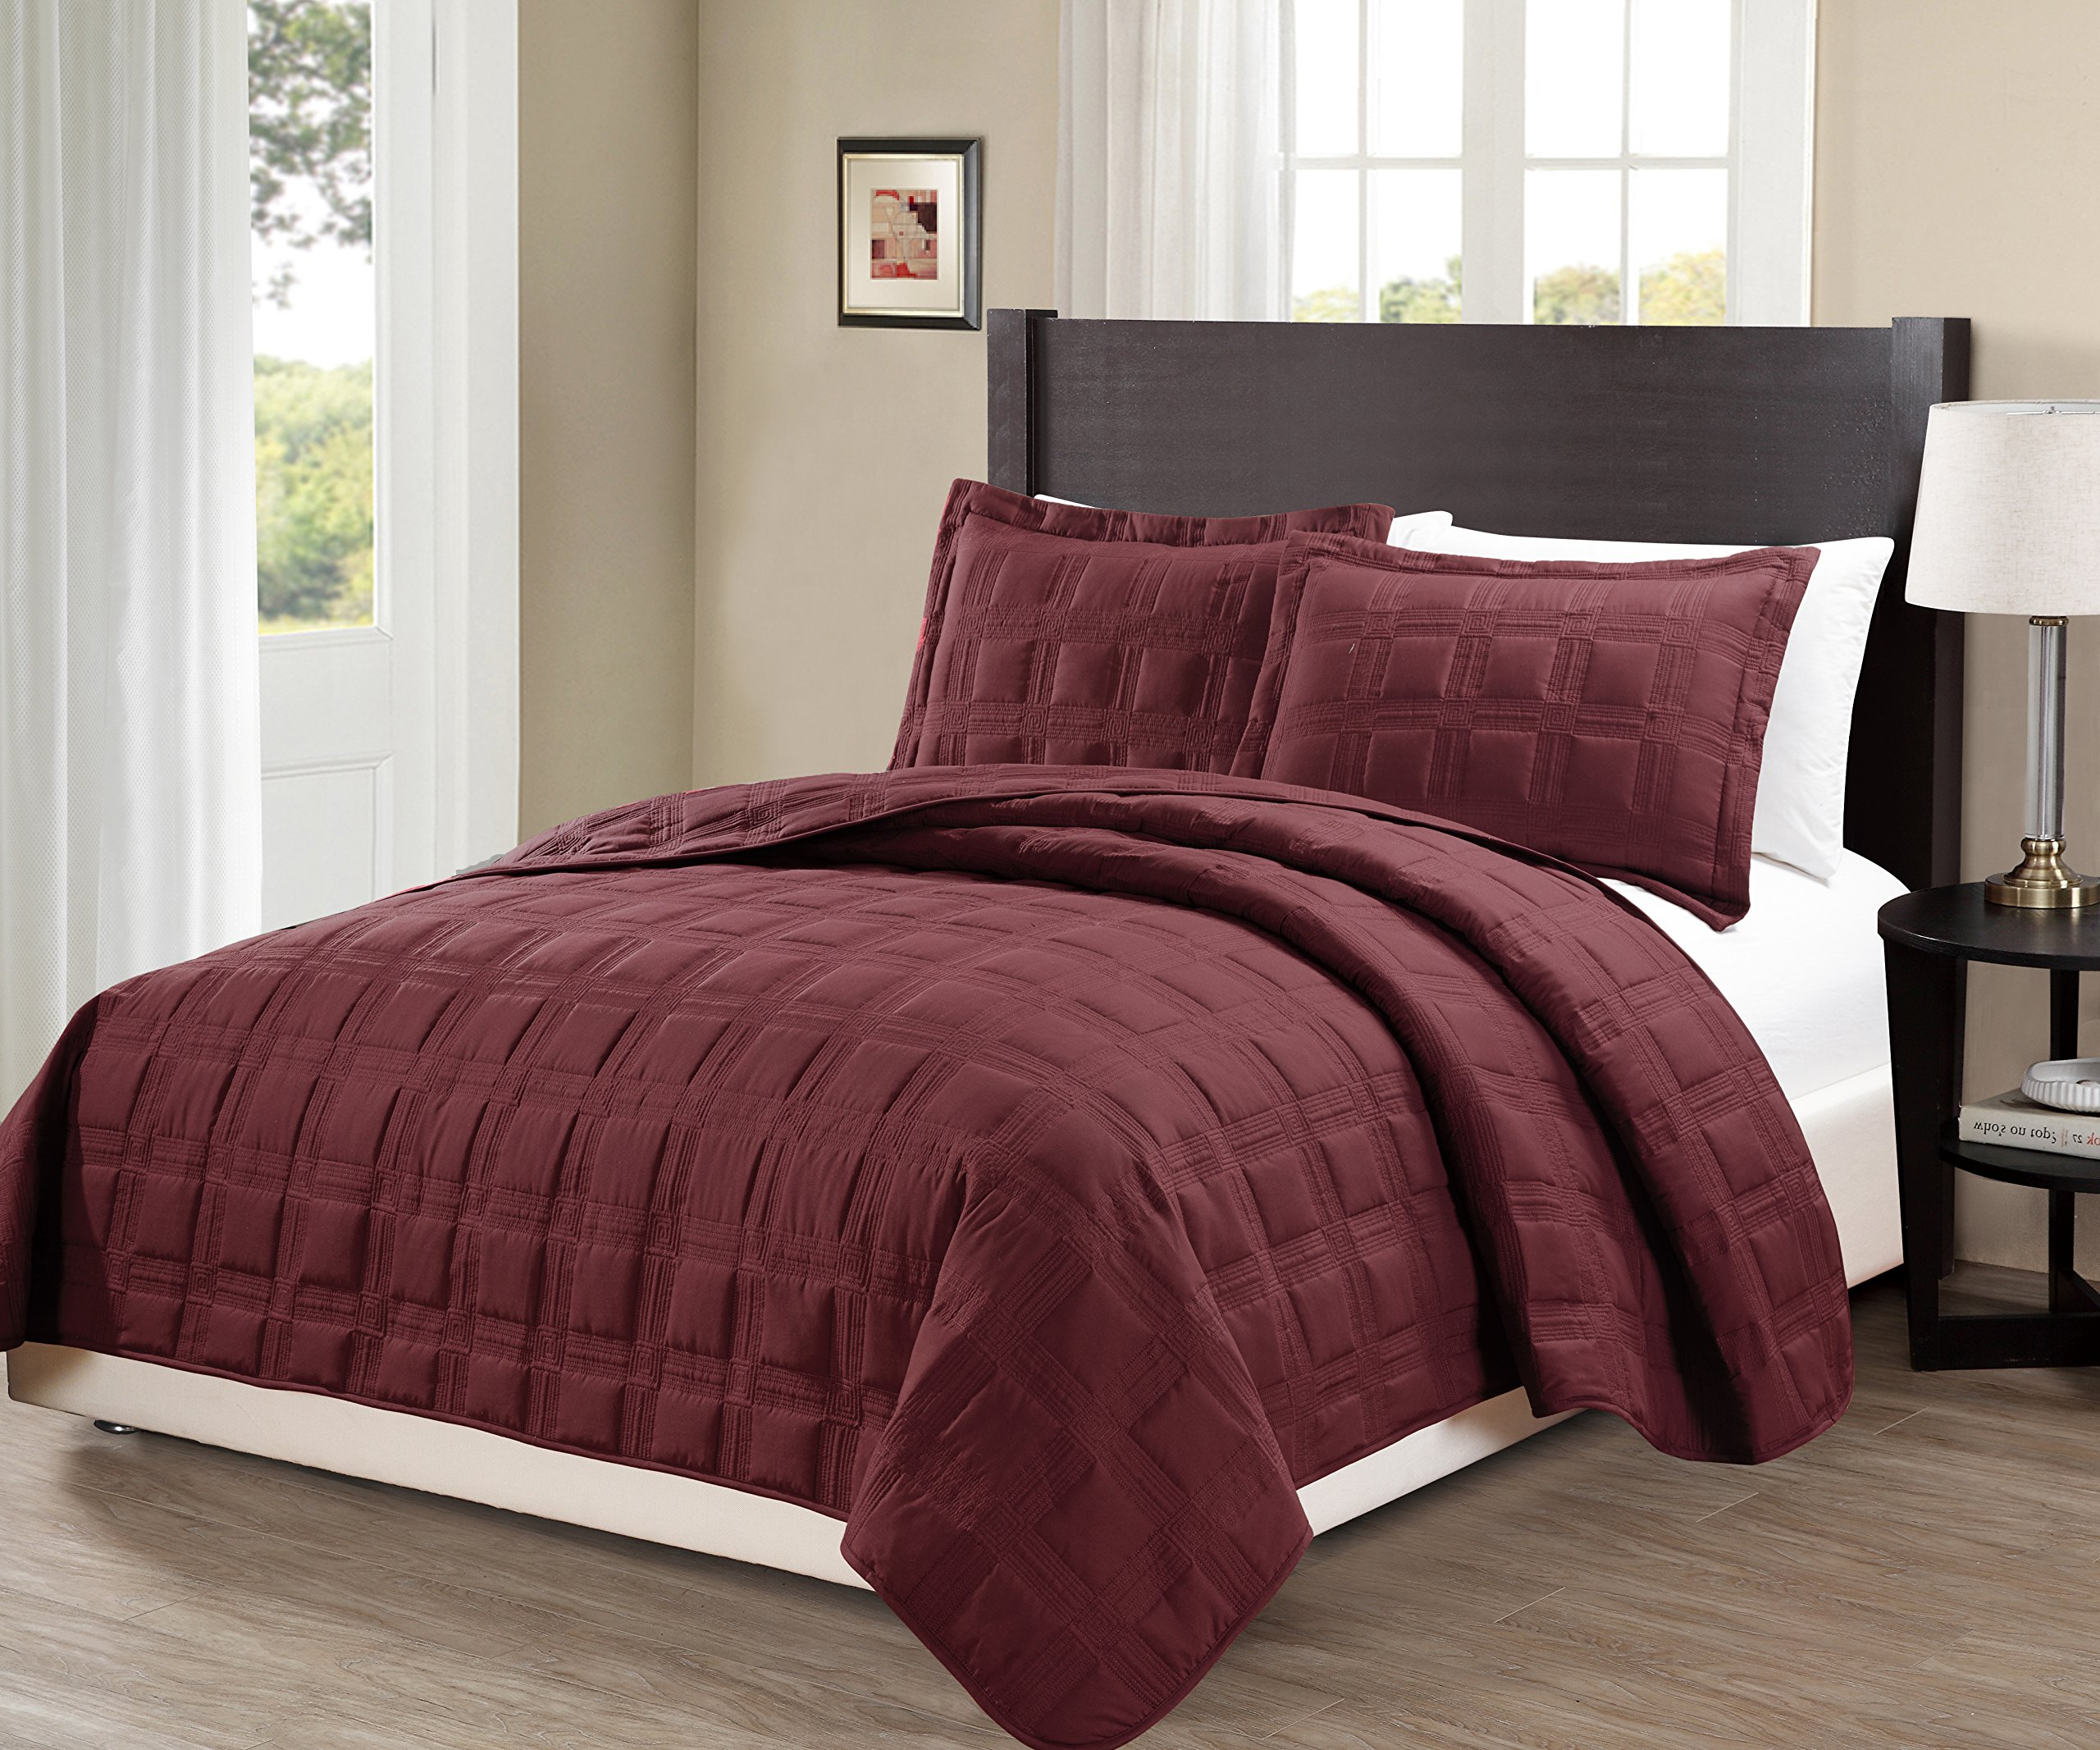 Fancy Collection 3pc King/California King Oversize Quilted Embroidery Bedspread Coverlet Set Solid Burgundy New